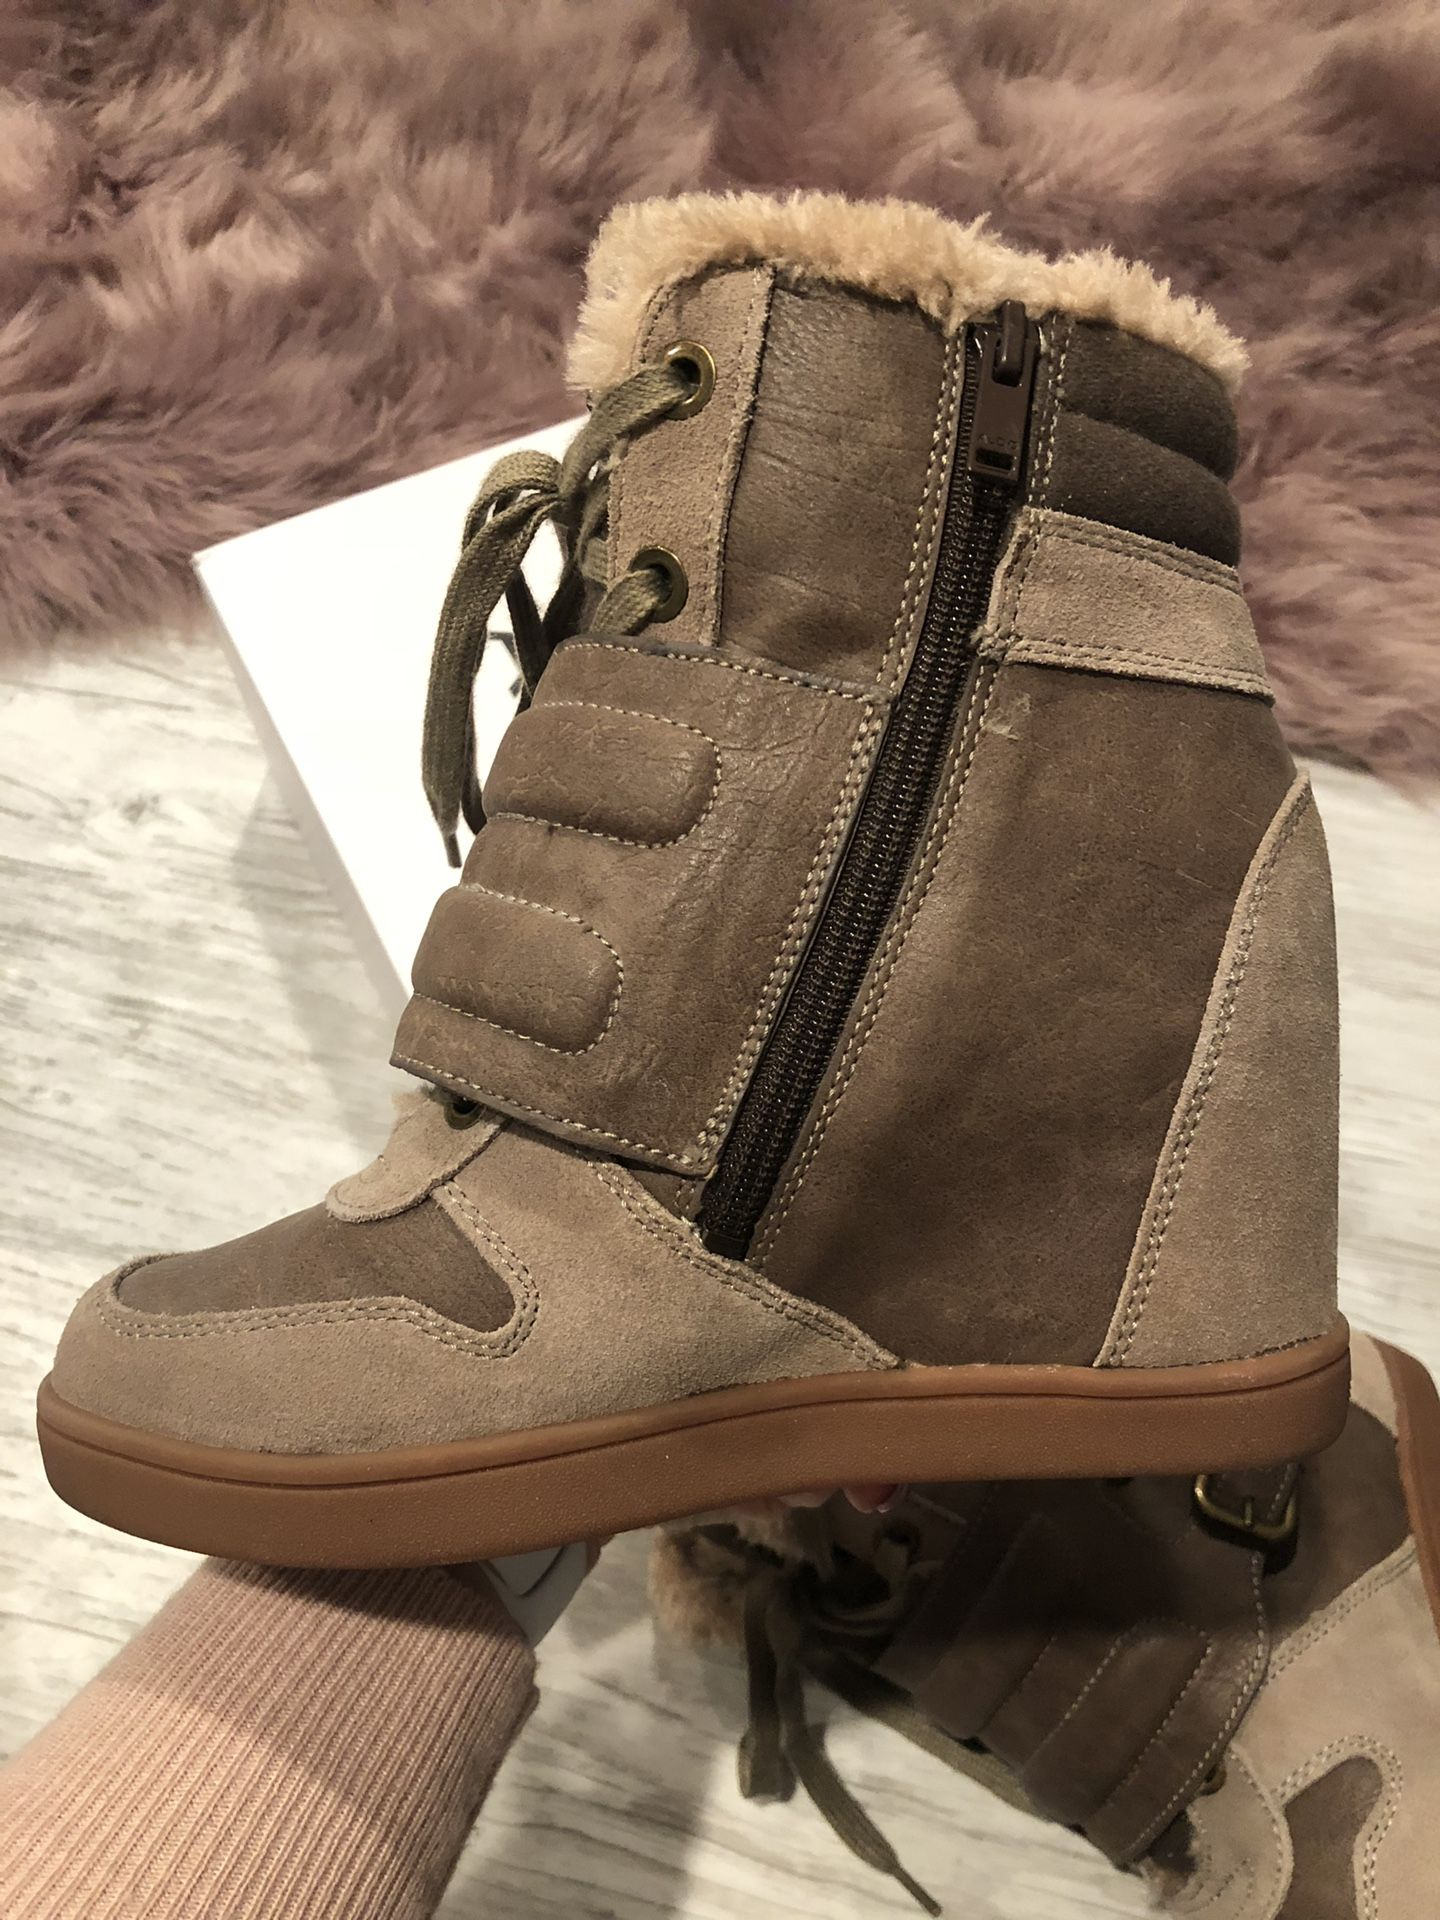 Brand NEW ALDO wedged boots!